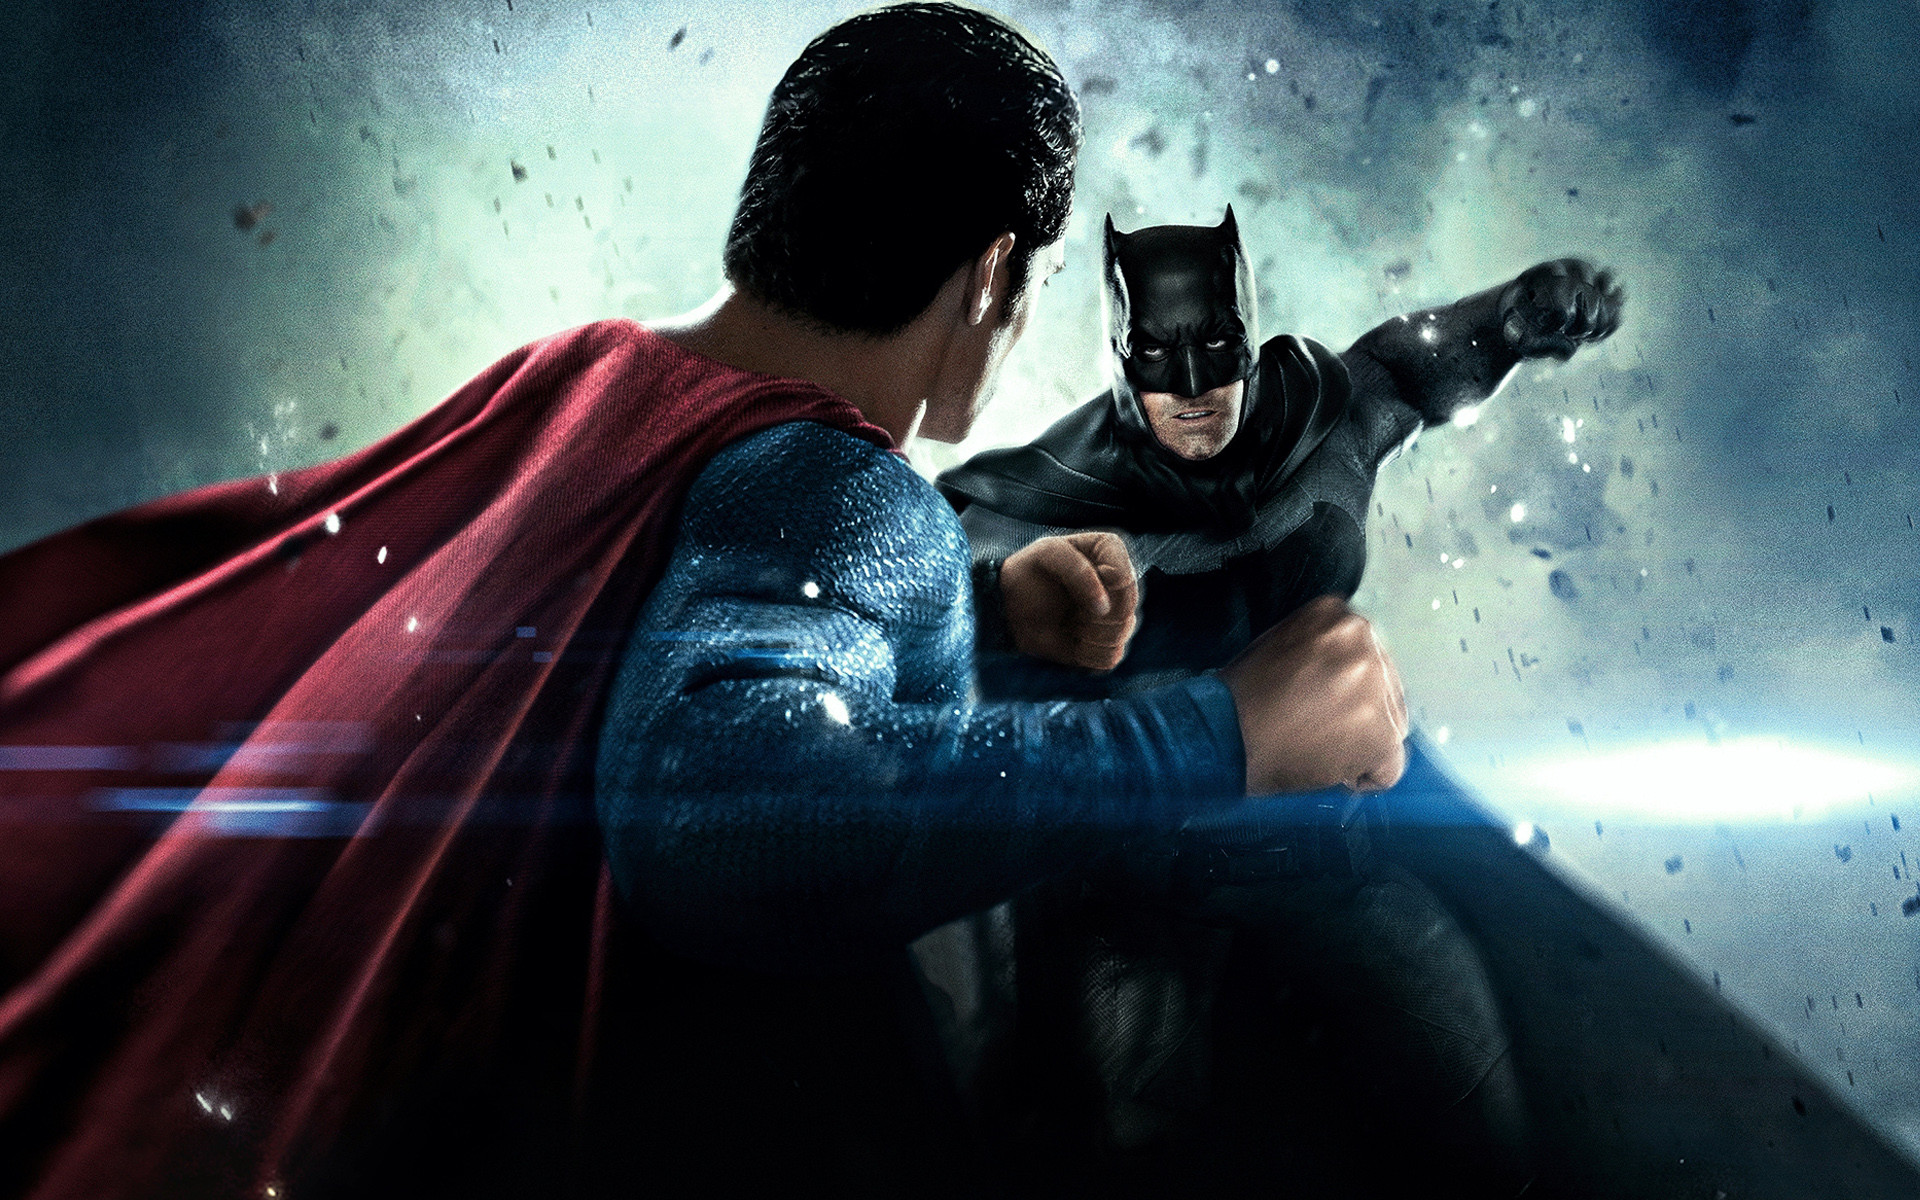 1920x1200 Batman V Superman Dawn of Justice 2016 Movie